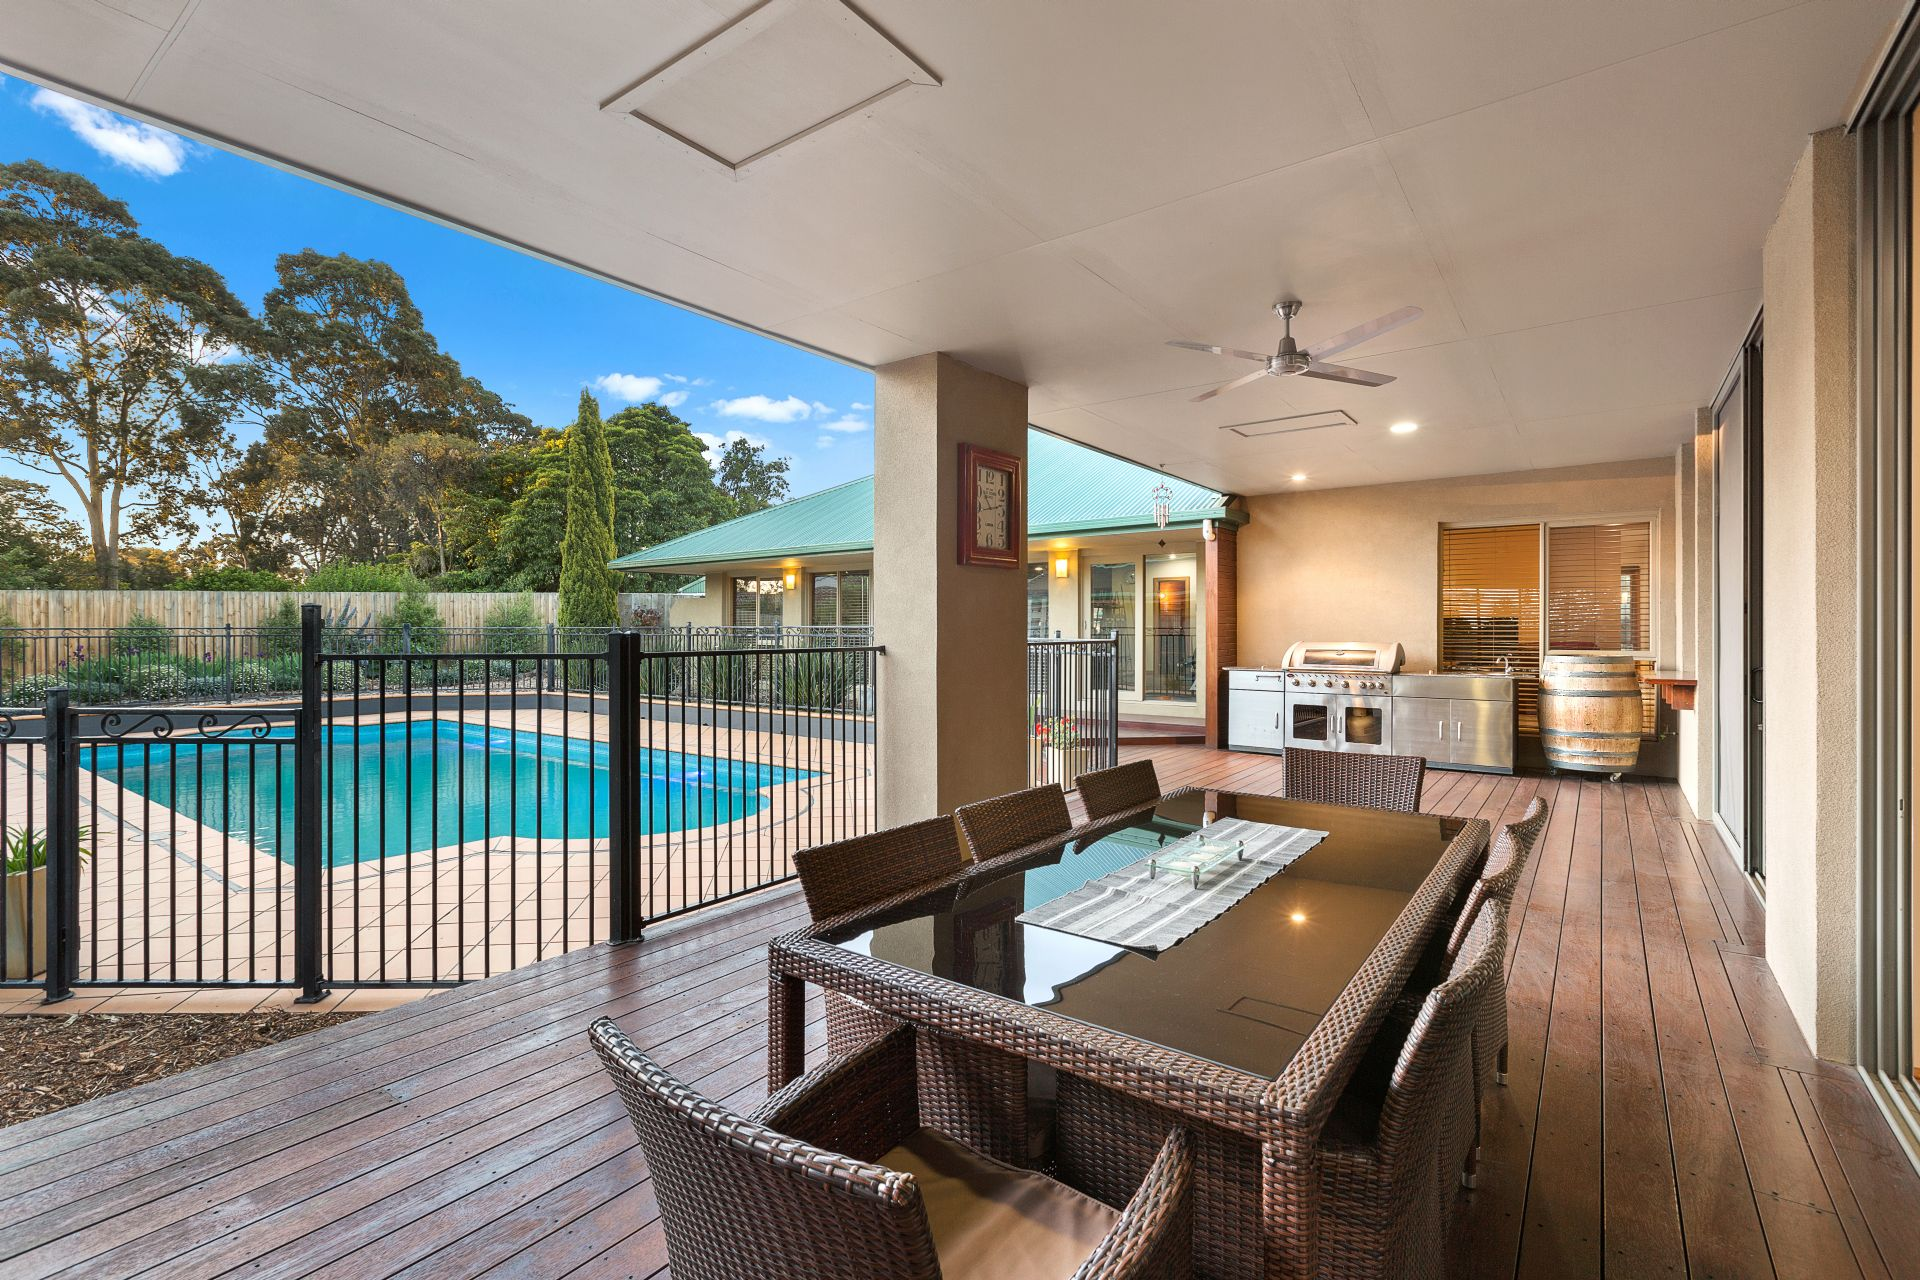 9 Le John Street, ROWVILLE, VIC, 3178 - Image